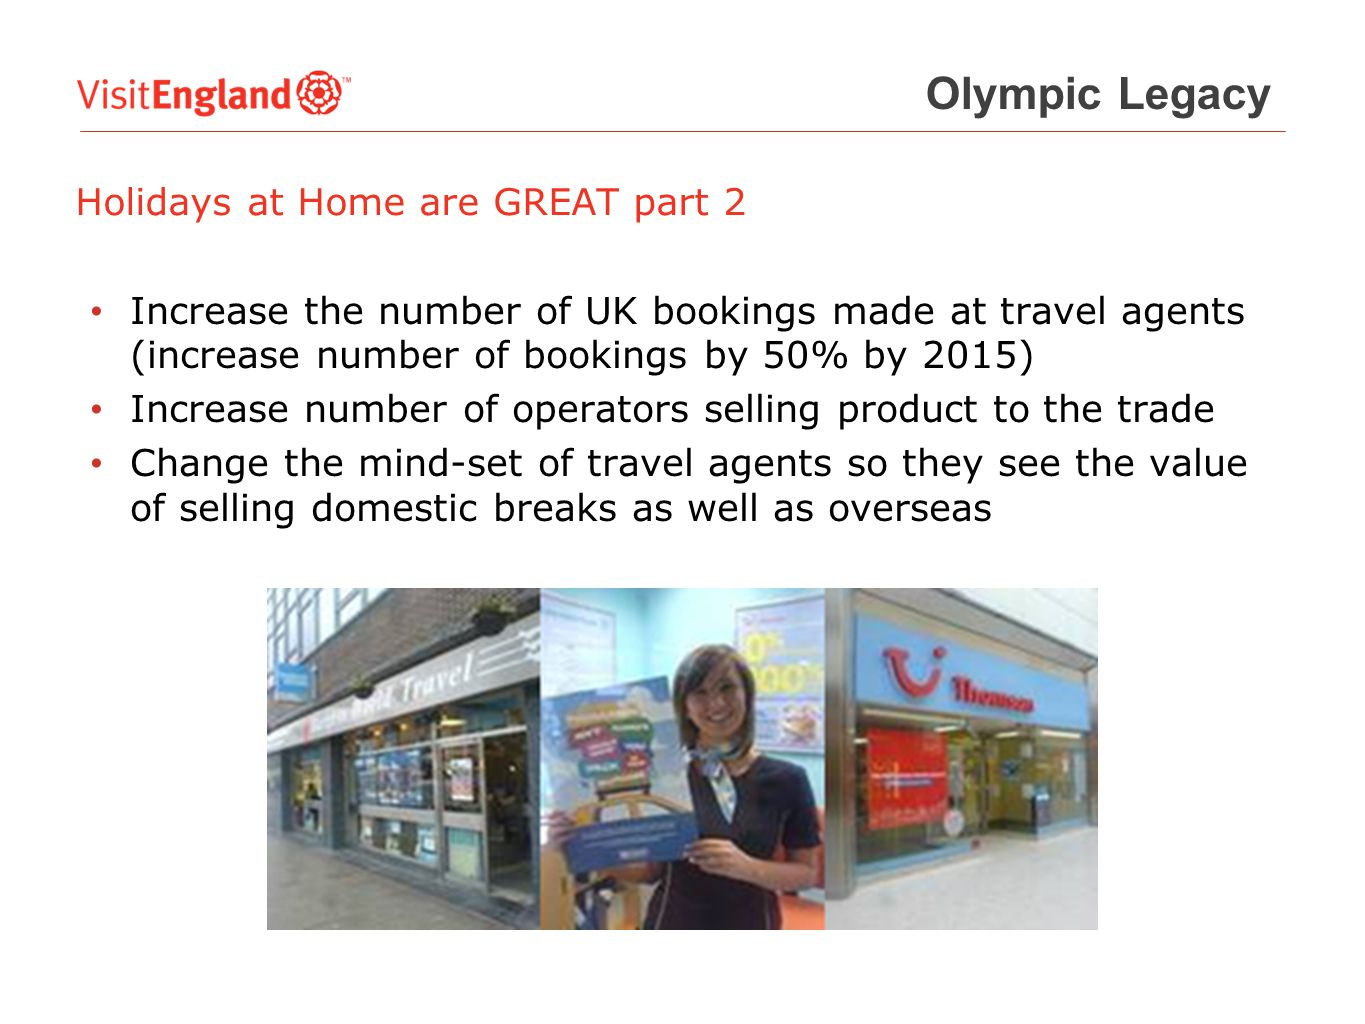 Holidays at Home are GREAT part 2 Increase the number of UK bookings made at travel agents (increase number of bookings by 50% by 2015) Increase number of operators selling product to the trade Change the mind-set of travel agents so they see the value of selling domestic breaks as well as overseas Olympic Legacy